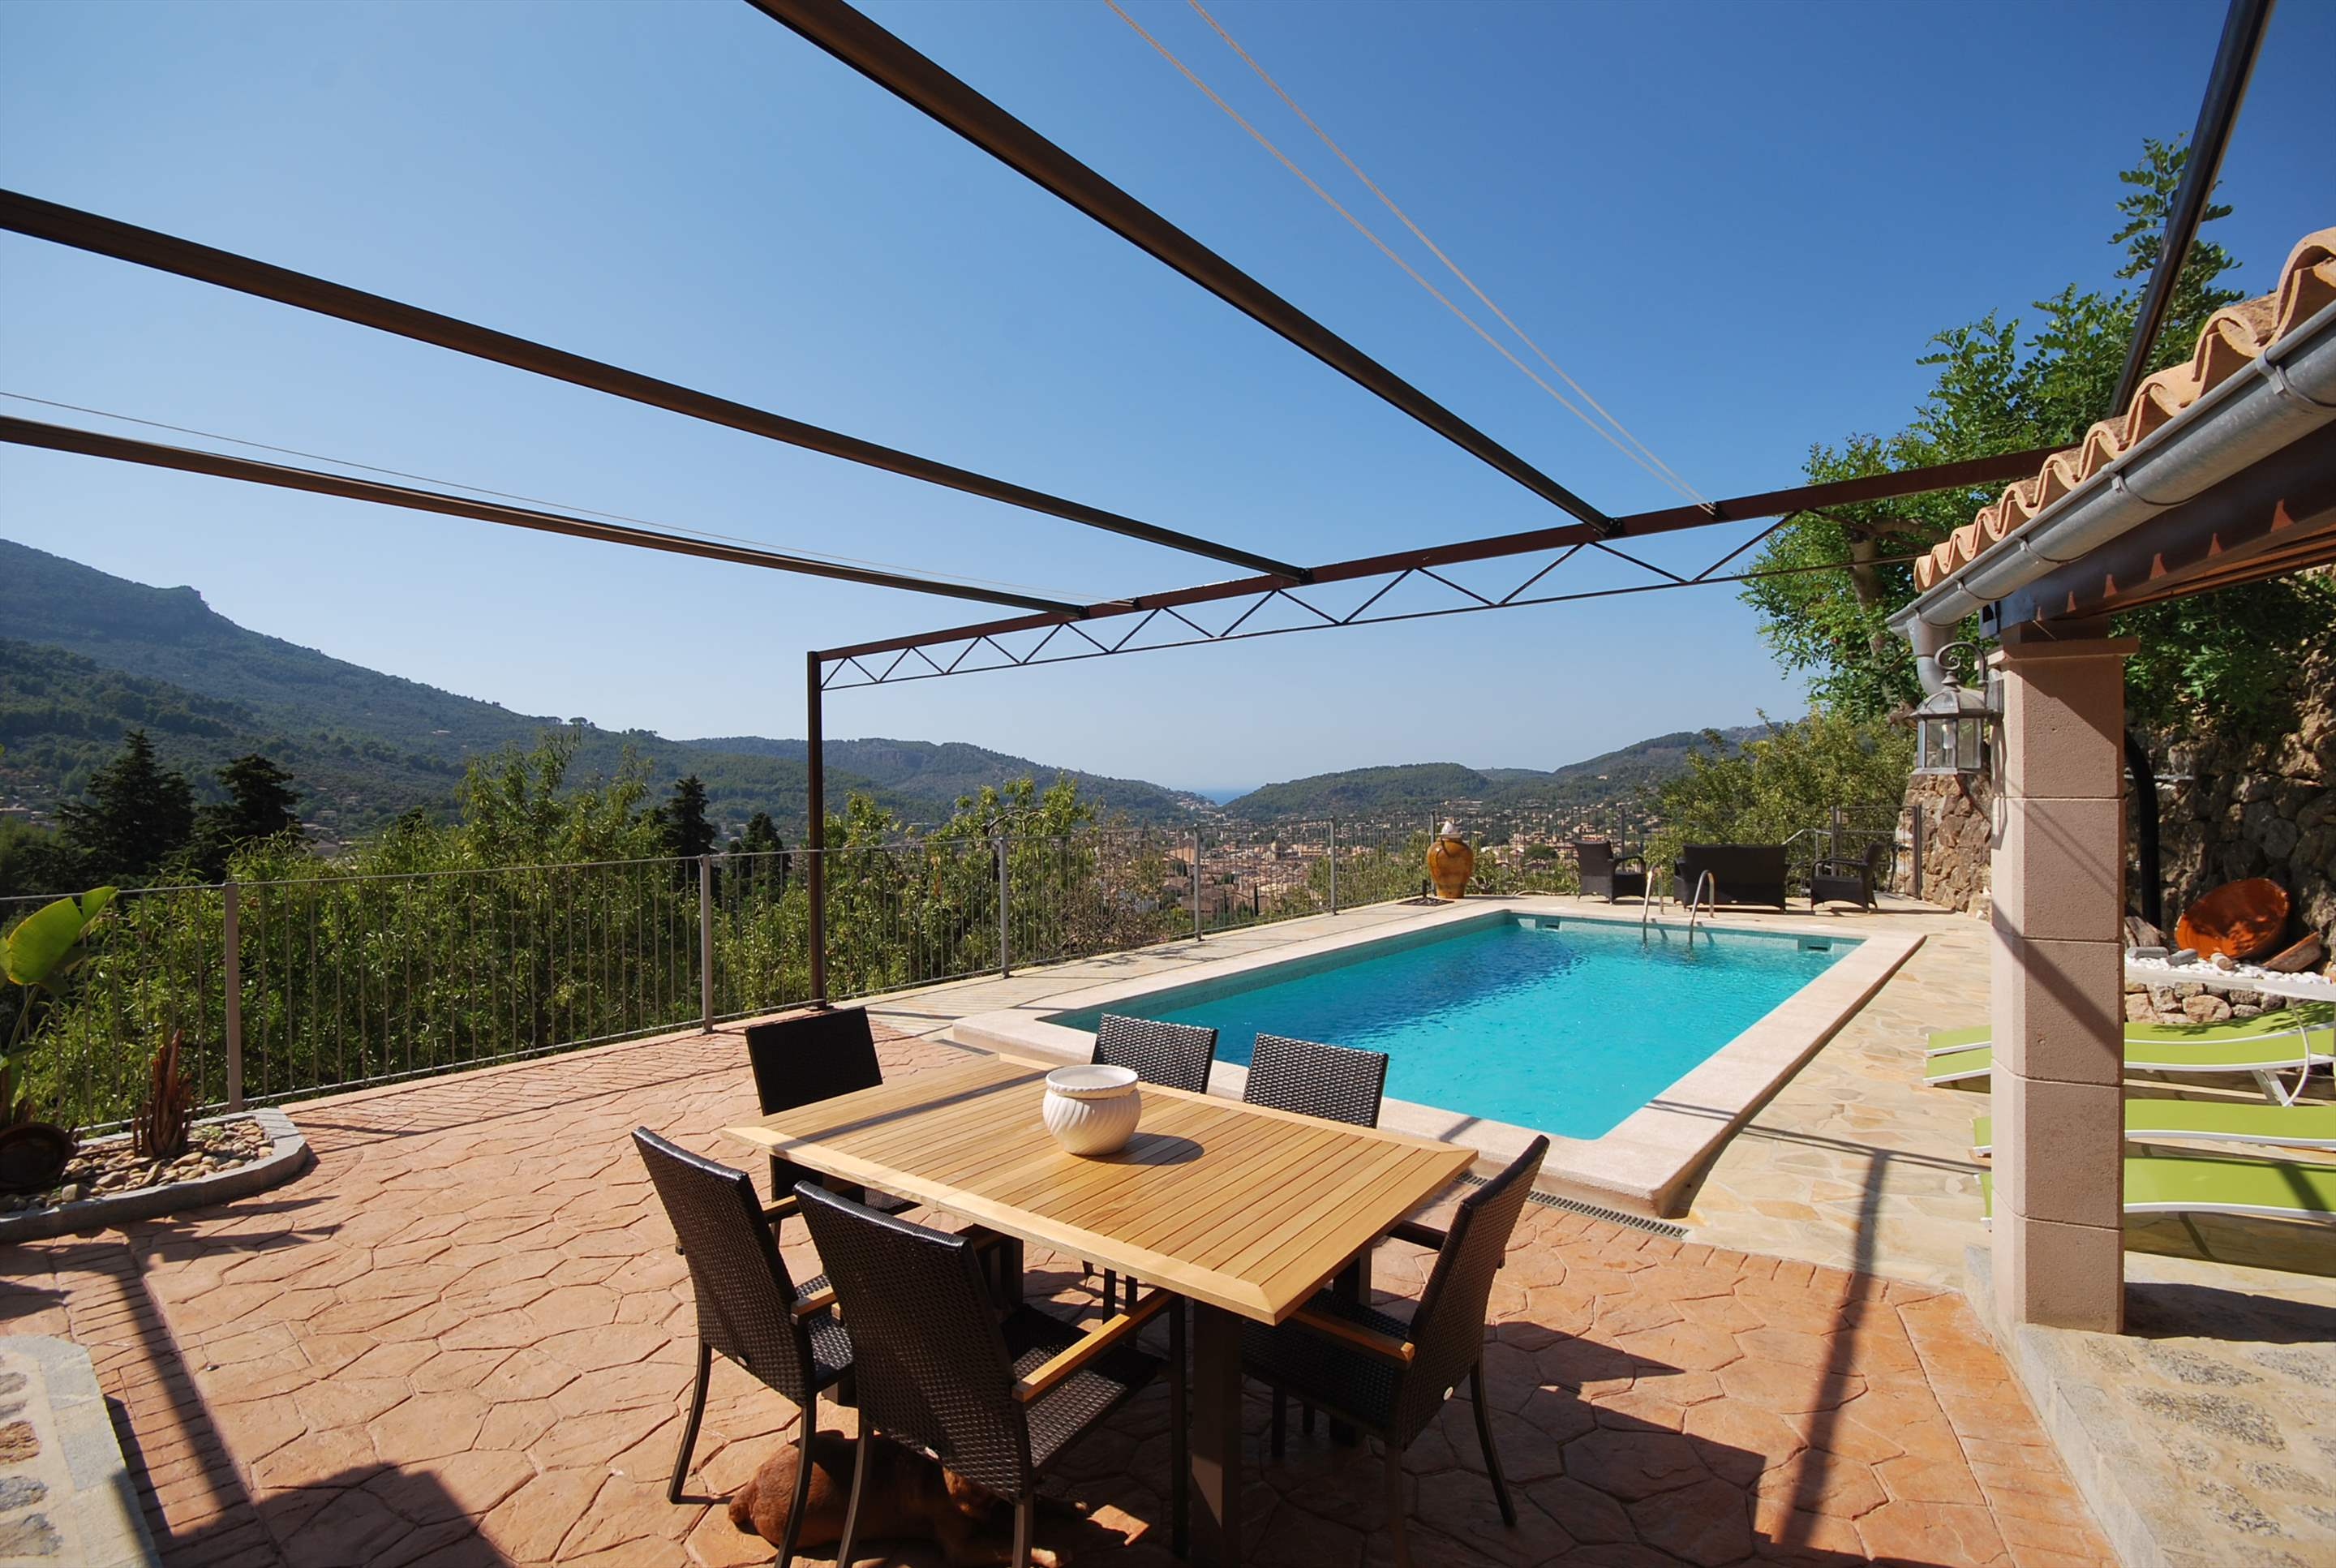 Casa Tres Cruces - SO1797, 3 bedroom villa in Soller & Deia, Majorca Photo #1